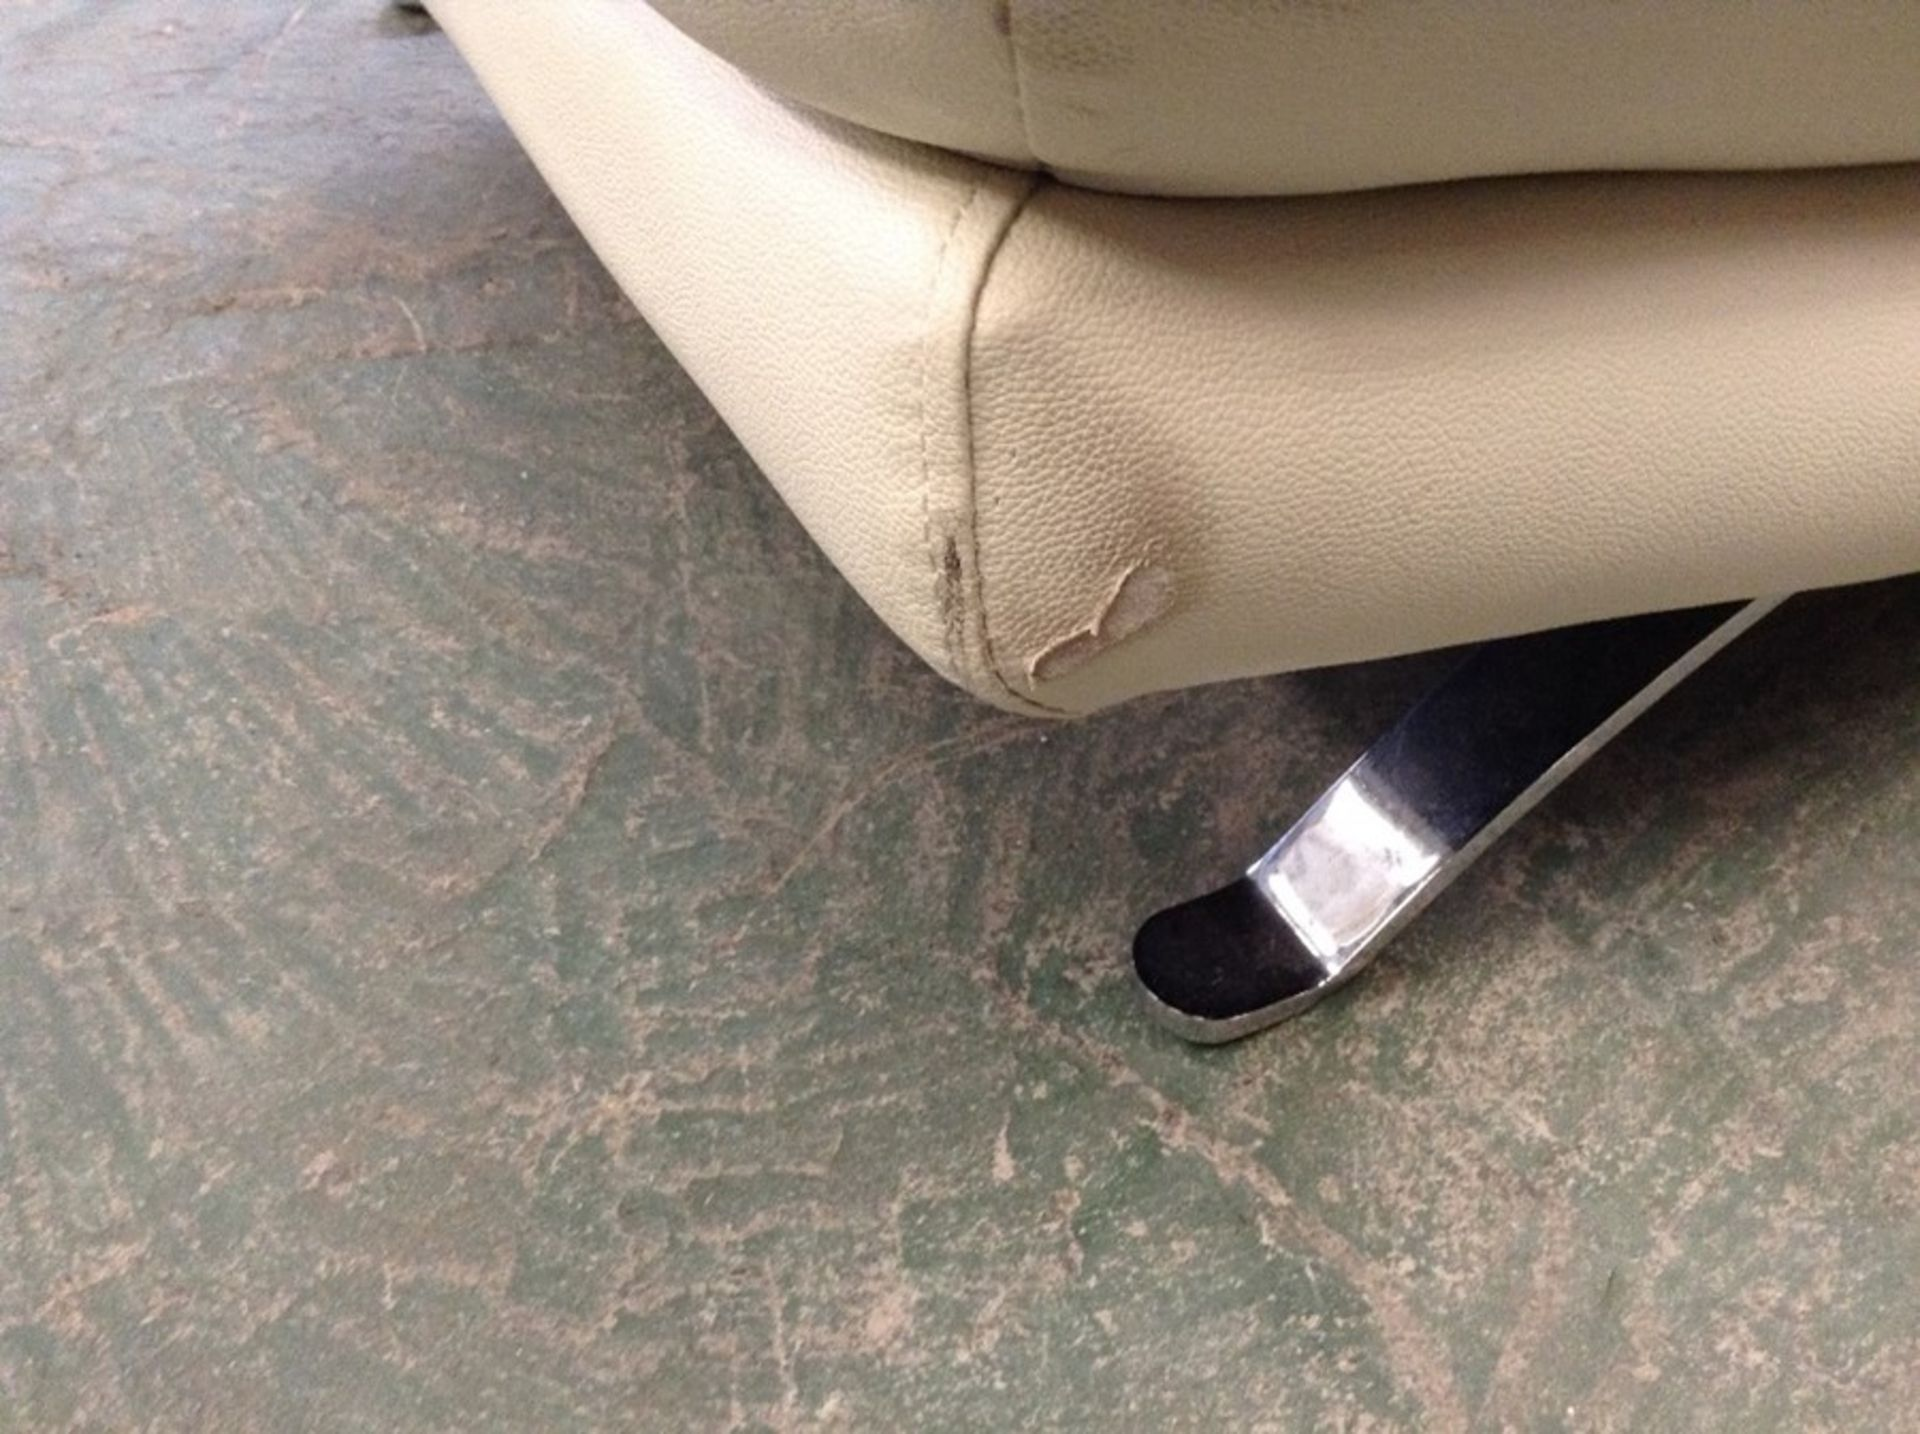 CREAM LEATHER 3 SEATER SOFA (RIPS ON CORNERS) - Image 2 of 3